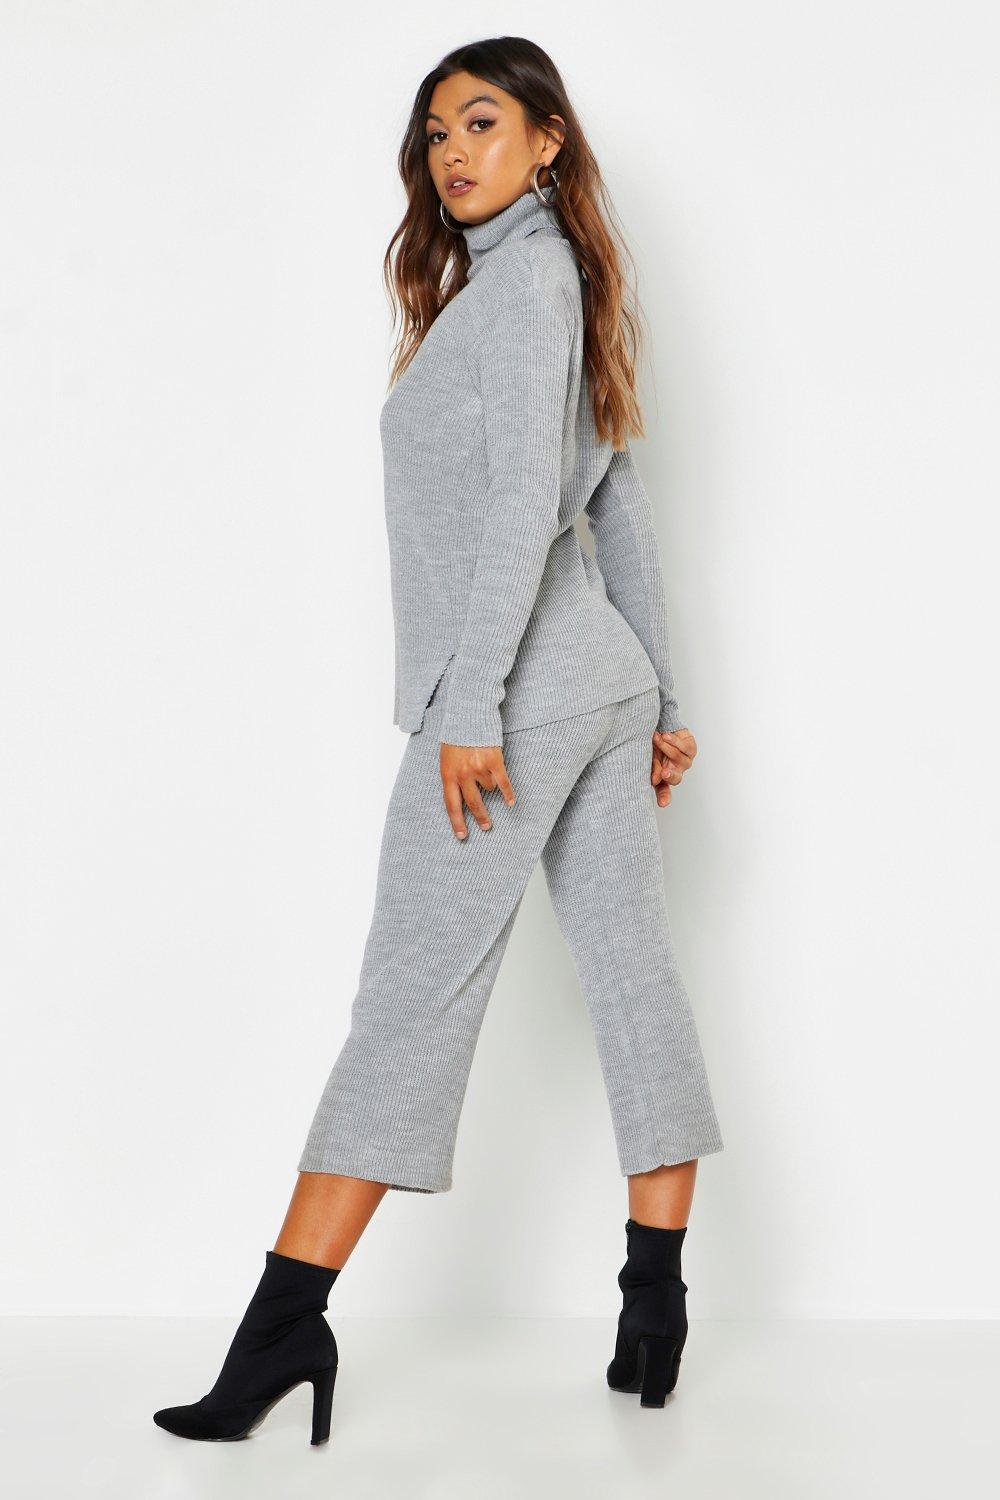 a920c9aabd0651 Boohoo - Multicolor Roll Neck Culotte Knitted Set - Lyst. View fullscreen